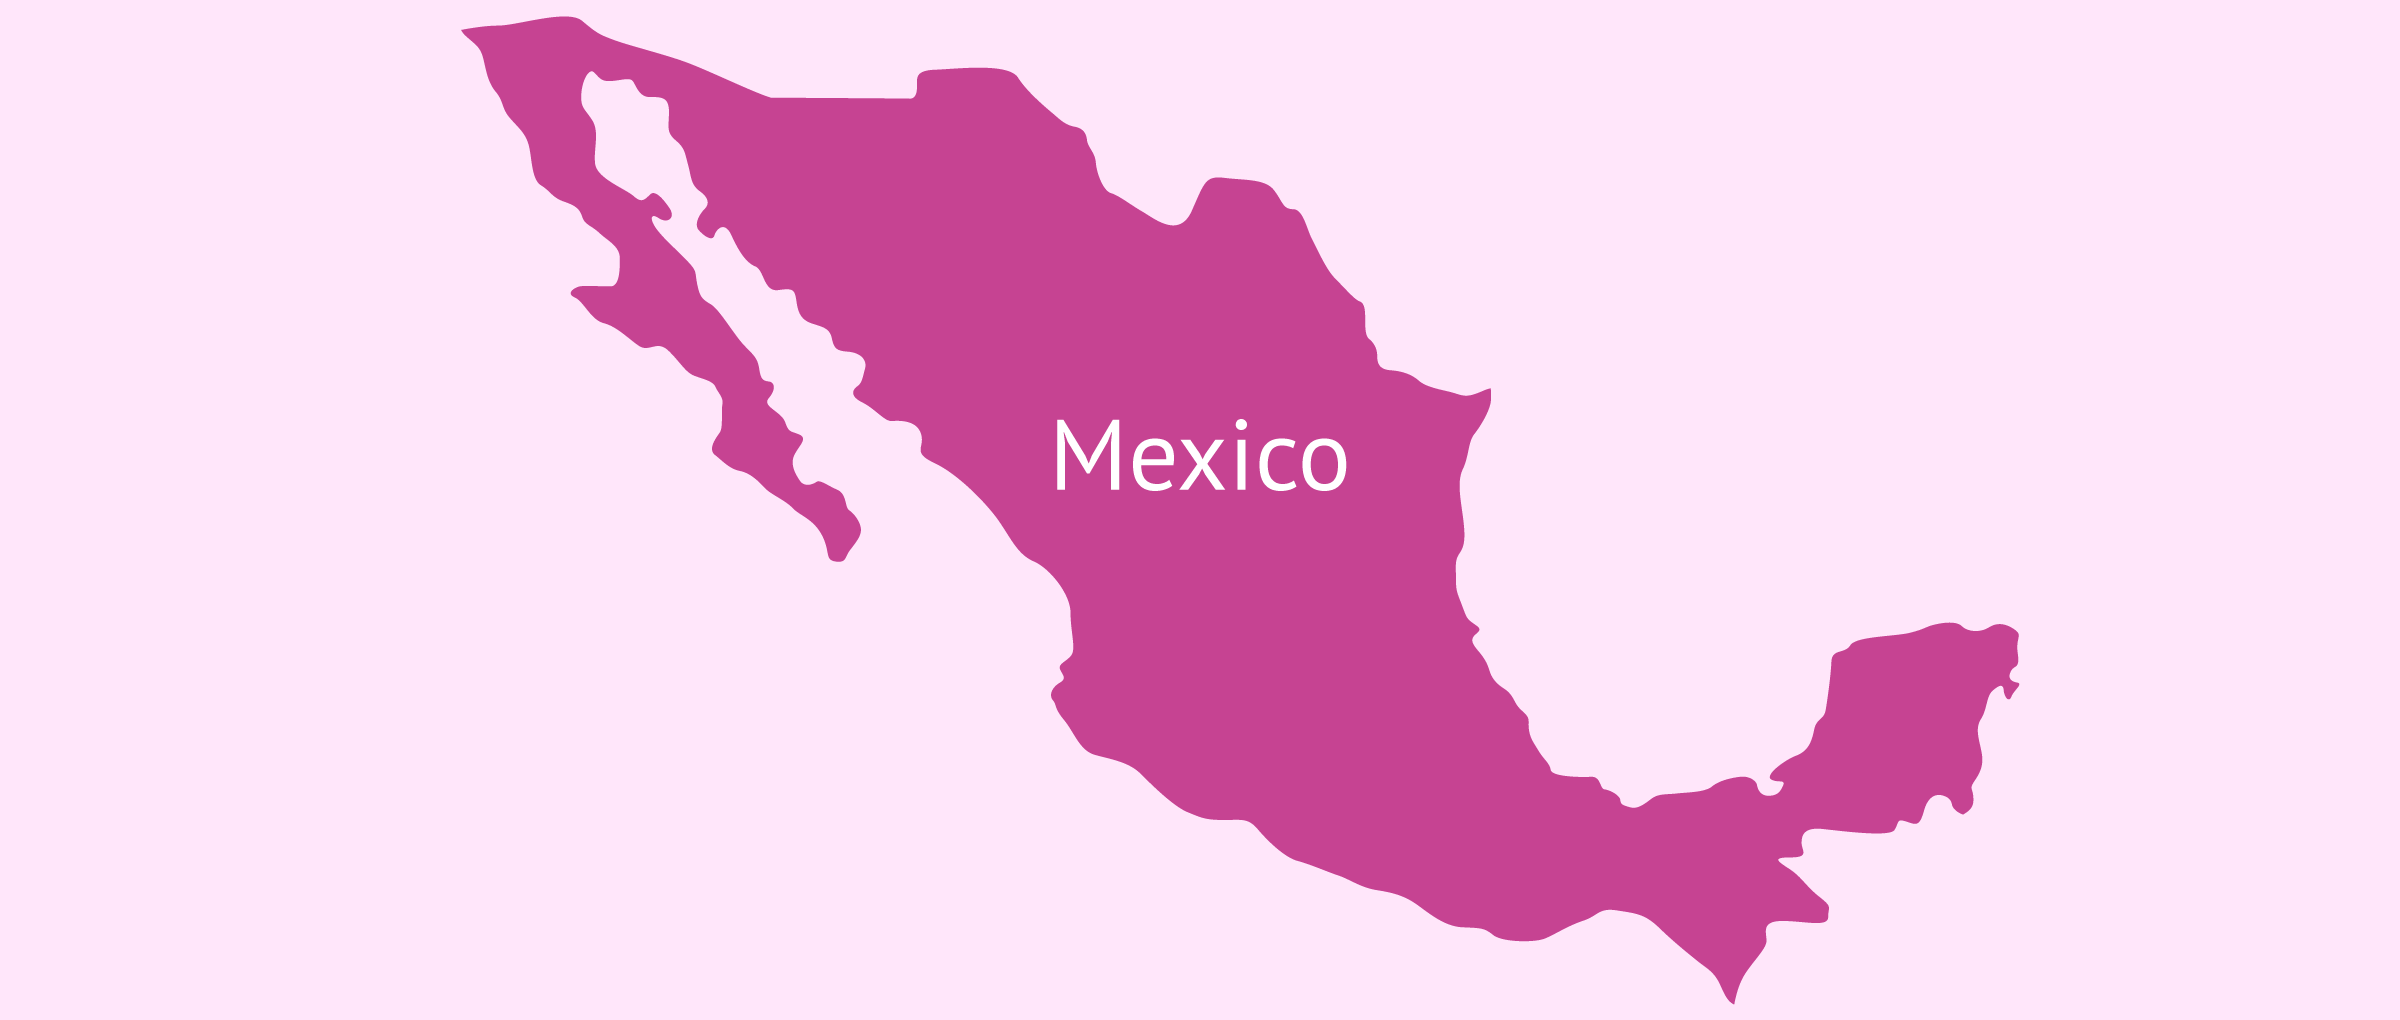 Surrogacy in Mexico: How is the legal situation in each of the Mexican states?